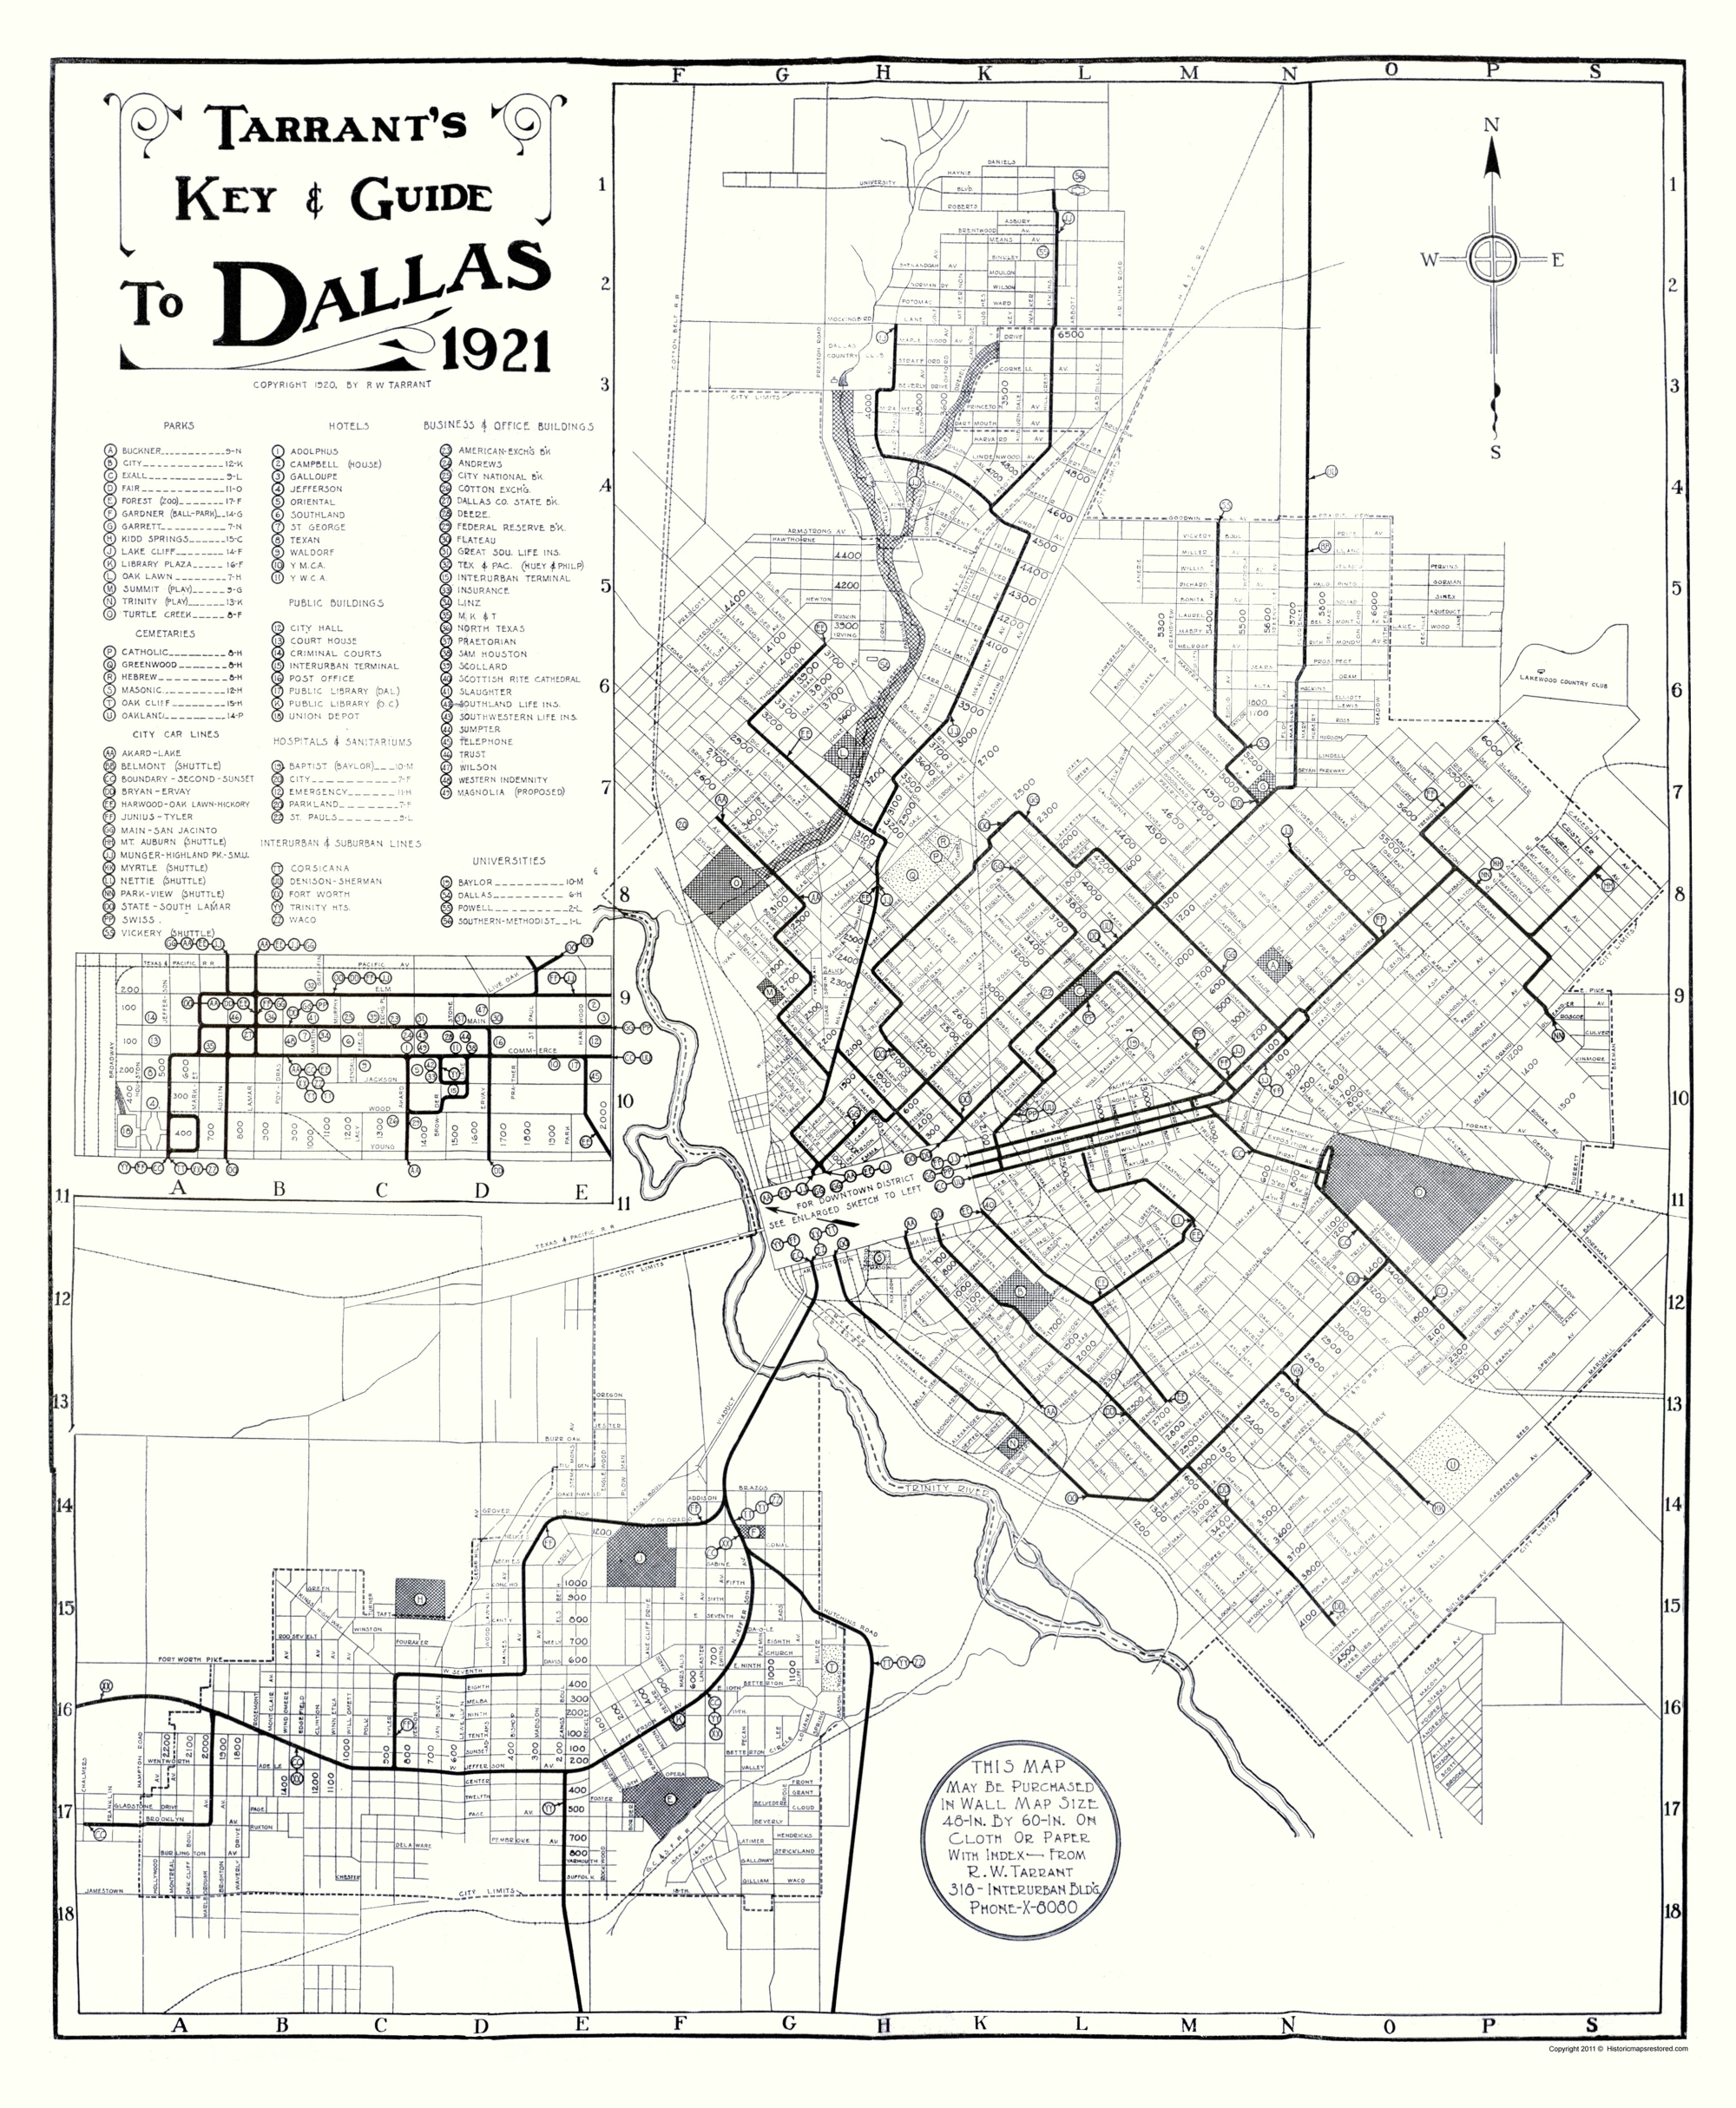 Old Dallas Map.Old City Map Dallas Texas Key And Guide Tarrant 1921